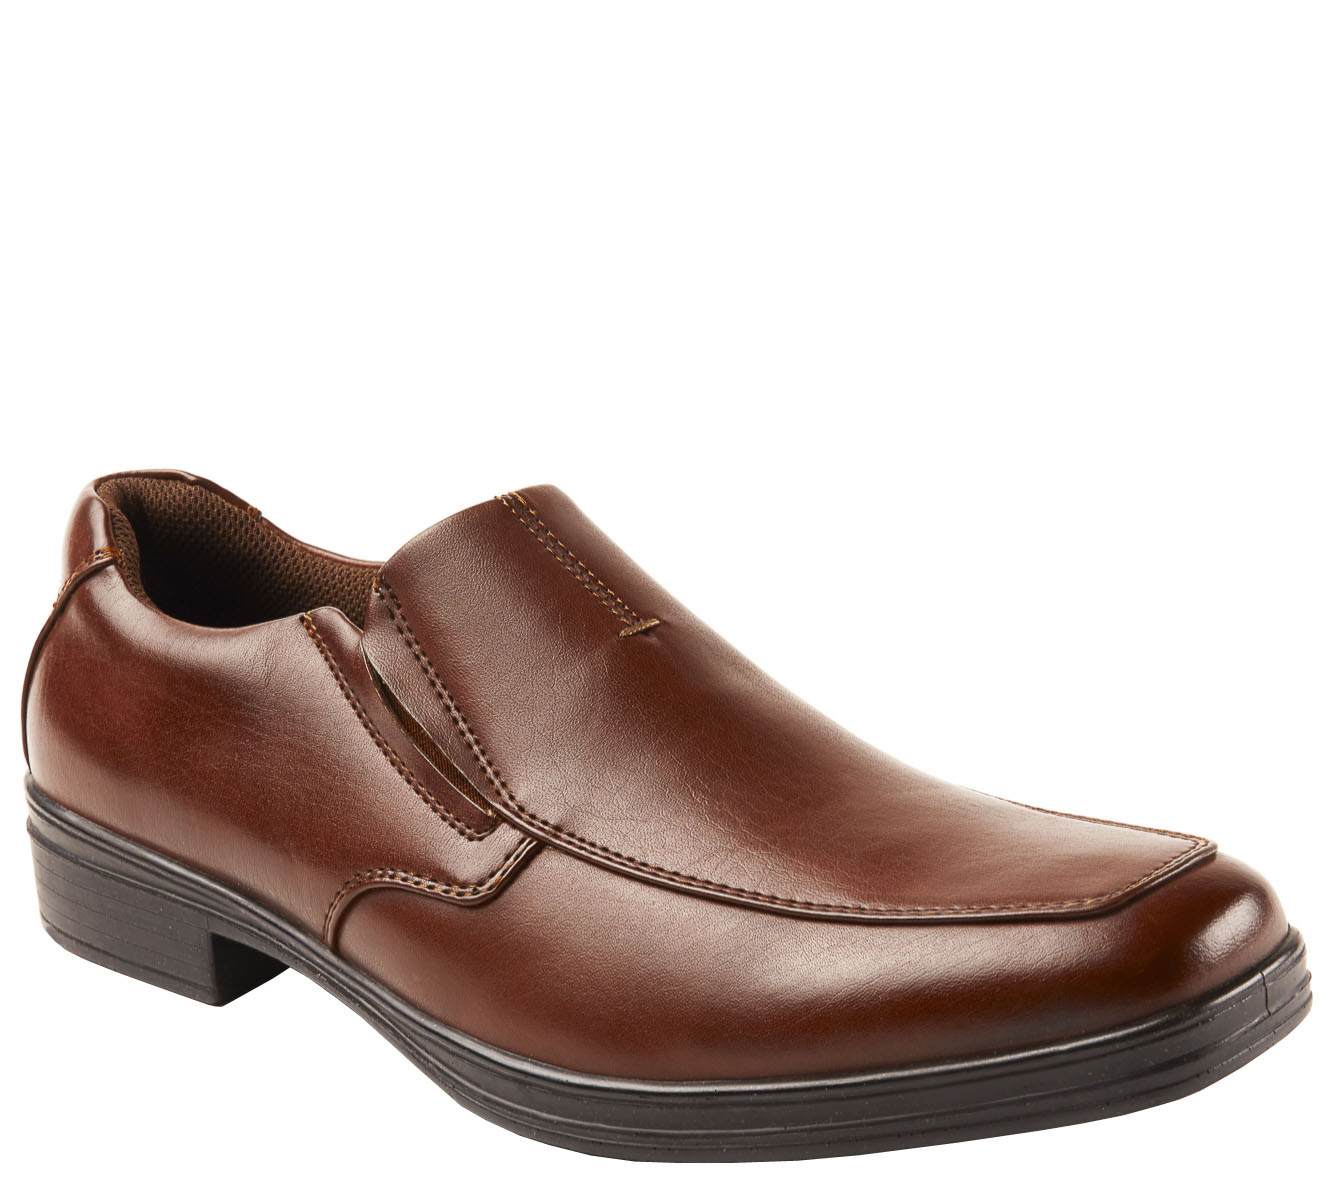 Deer Stags Men's 902 Loafers - Fit